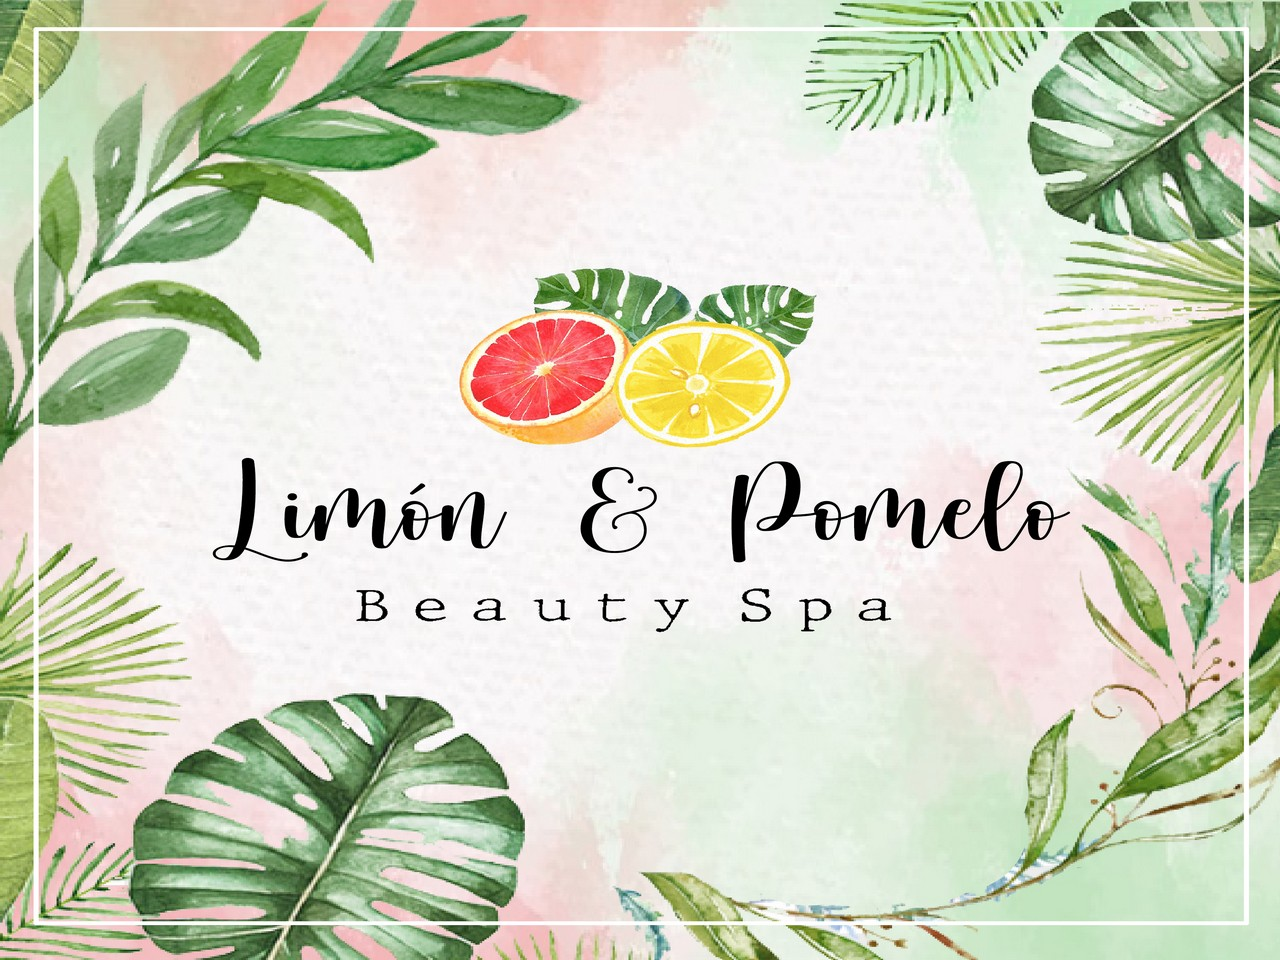 Limón & Pomelo Beauty Spa